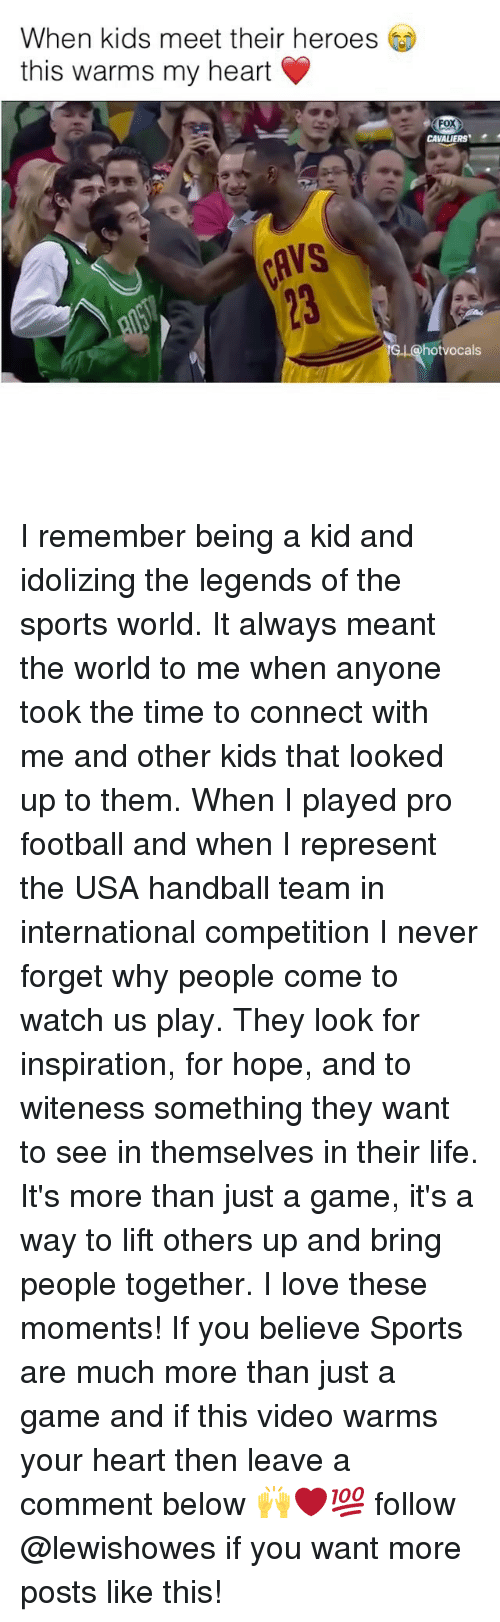 handball: When kids meet their heroes  this warms my heart  Fox  CAVALIERS  IG hot vocals I remember being a kid and idolizing the legends of the sports world. It always meant the world to me when anyone took the time to connect with me and other kids that looked up to them. When I played pro football and when I represent the USA handball team in international competition I never forget why people come to watch us play. They look for inspiration, for hope, and to witeness something they want to see in themselves in their life. It's more than just a game, it's a way to lift others up and bring people together. I love these moments! If you believe Sports are much more than just a game and if this video warms your heart then leave a comment below 🙌❤️💯 follow @lewishowes if you want more posts like this!